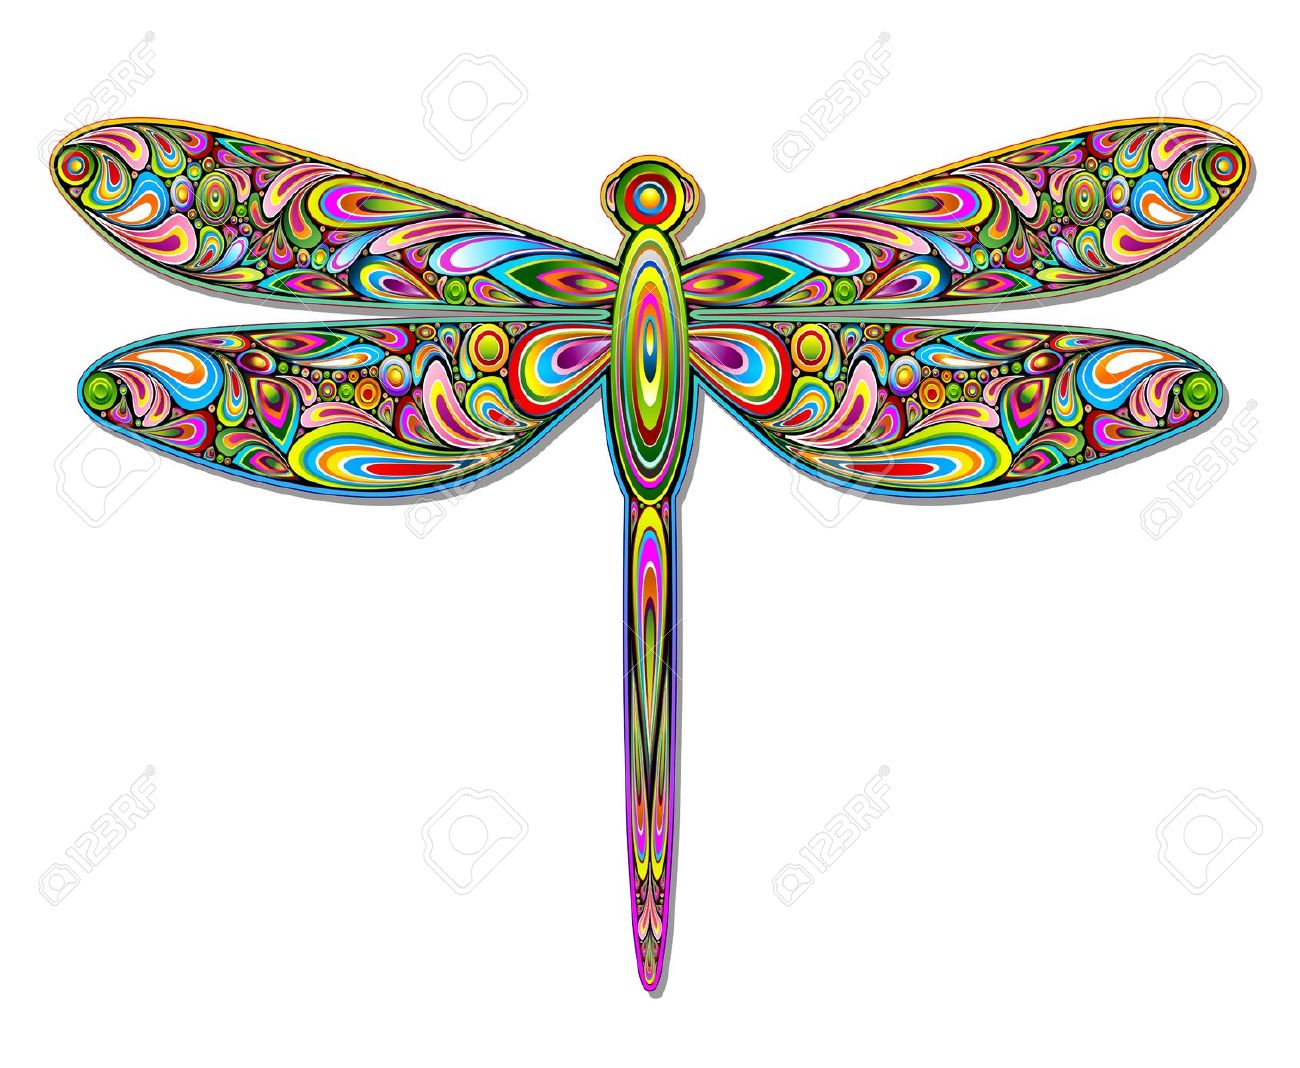 Dragonfly clipart colorful dragonfly. Dragonflies free download best